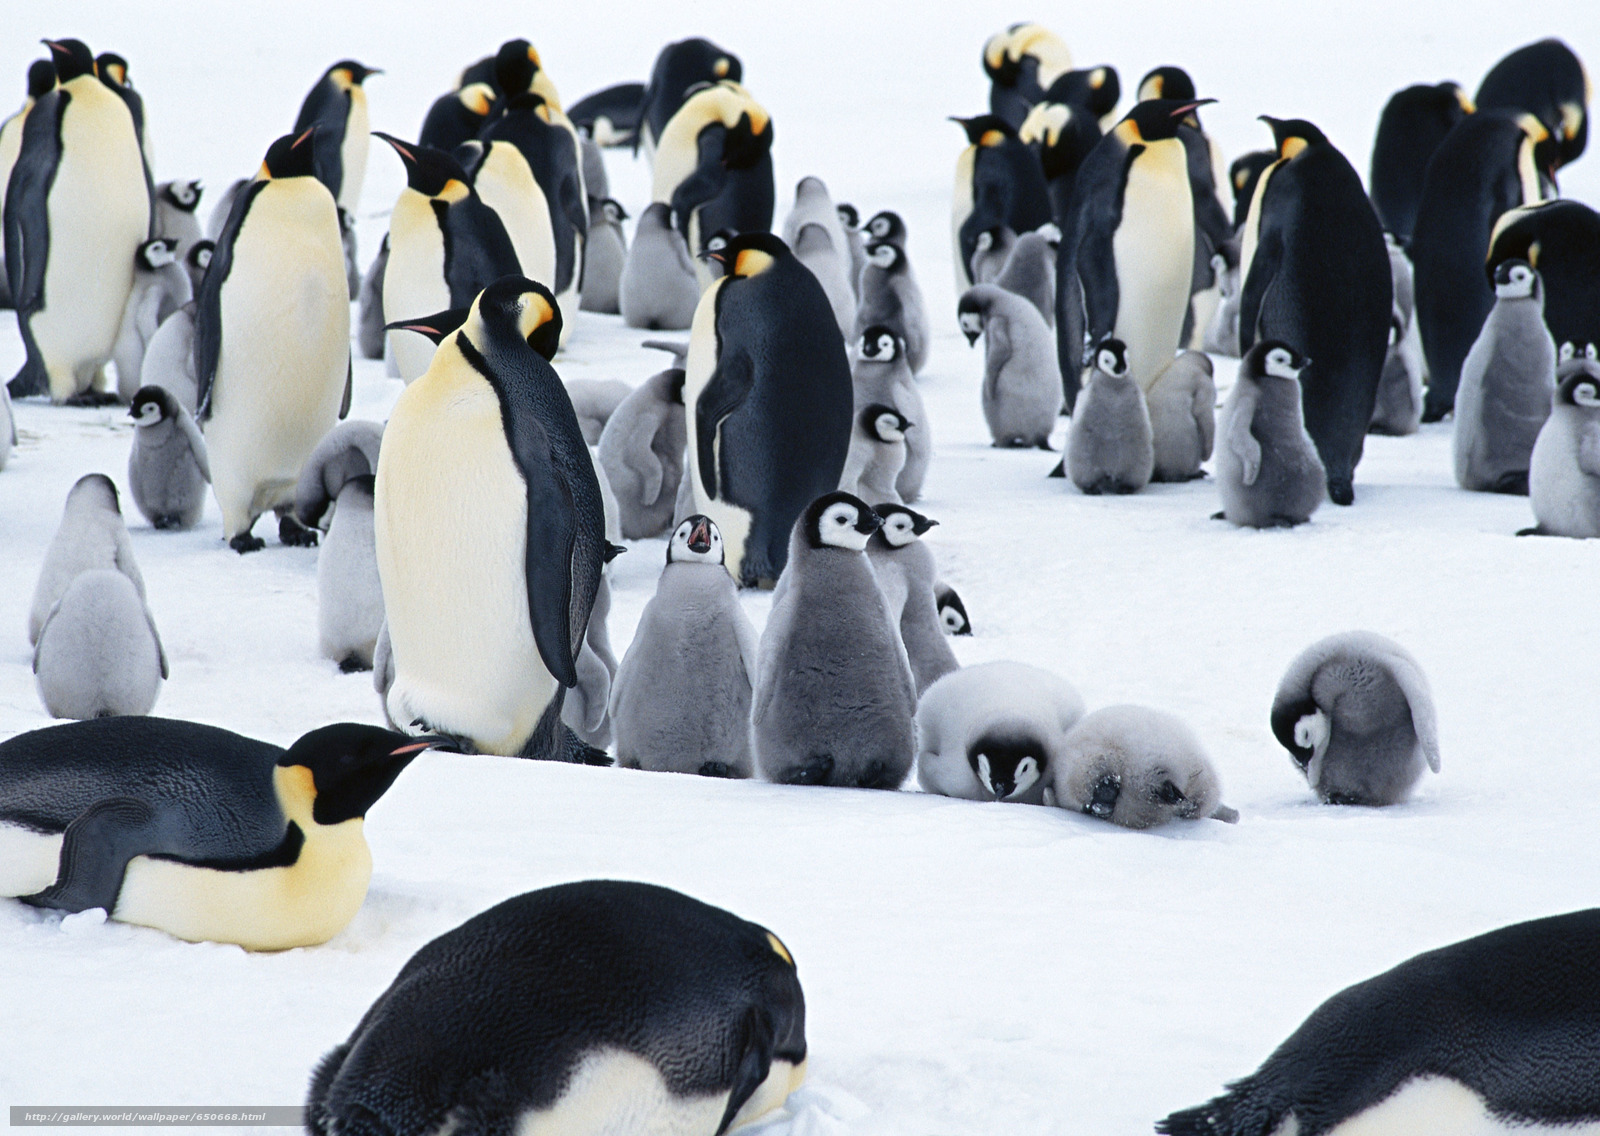 Rainforest Animals List With Pictures, Facts & Information Pictures of animals found in antarctica